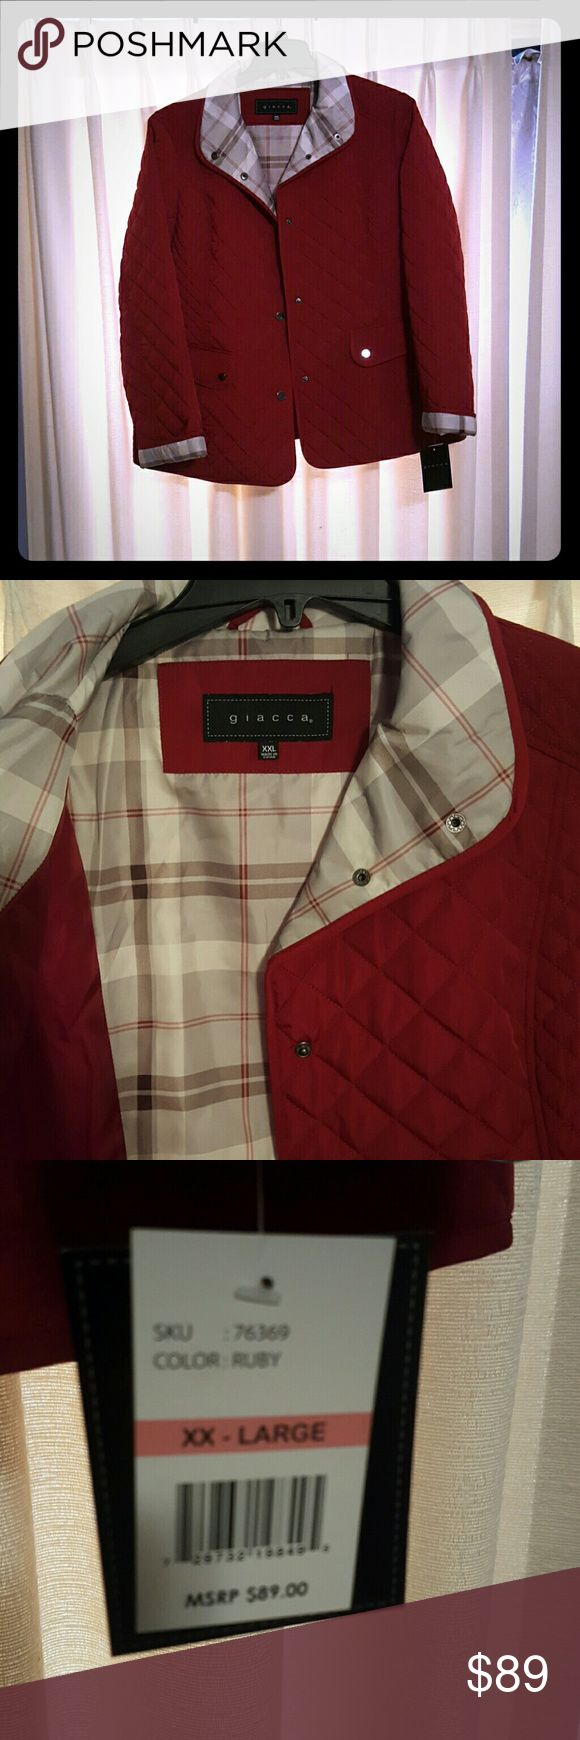 Giacca Spring coat New with tags.  Too big for me now.  Beautiful ruby red with plaid yoke and accents.  Quilted. giacca Jackets & Coats Utility Jackets